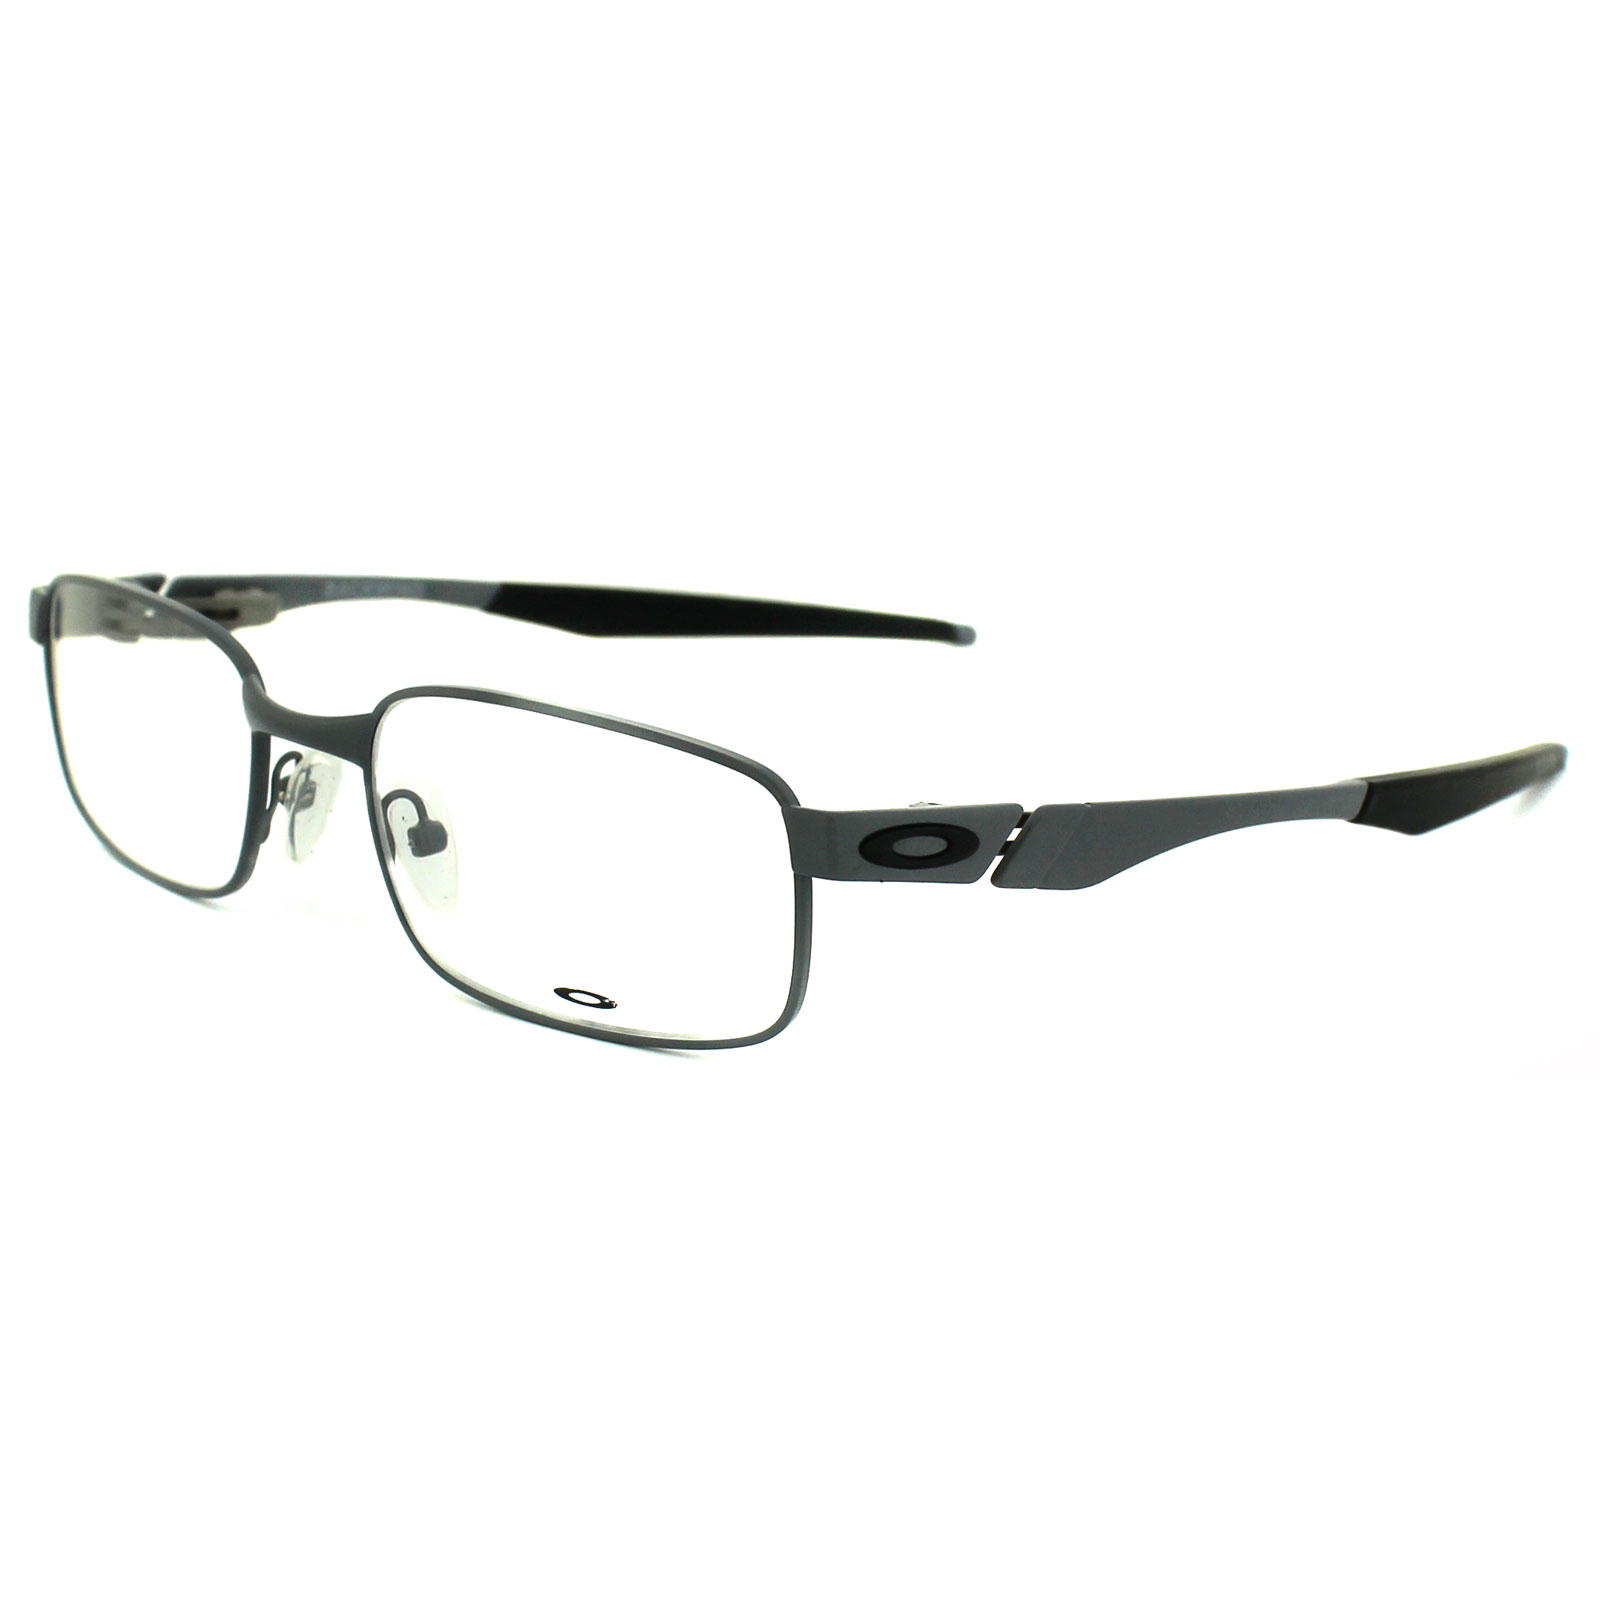 Cheap Oakley Backwind Glasses Frames Discounted Sunglasses